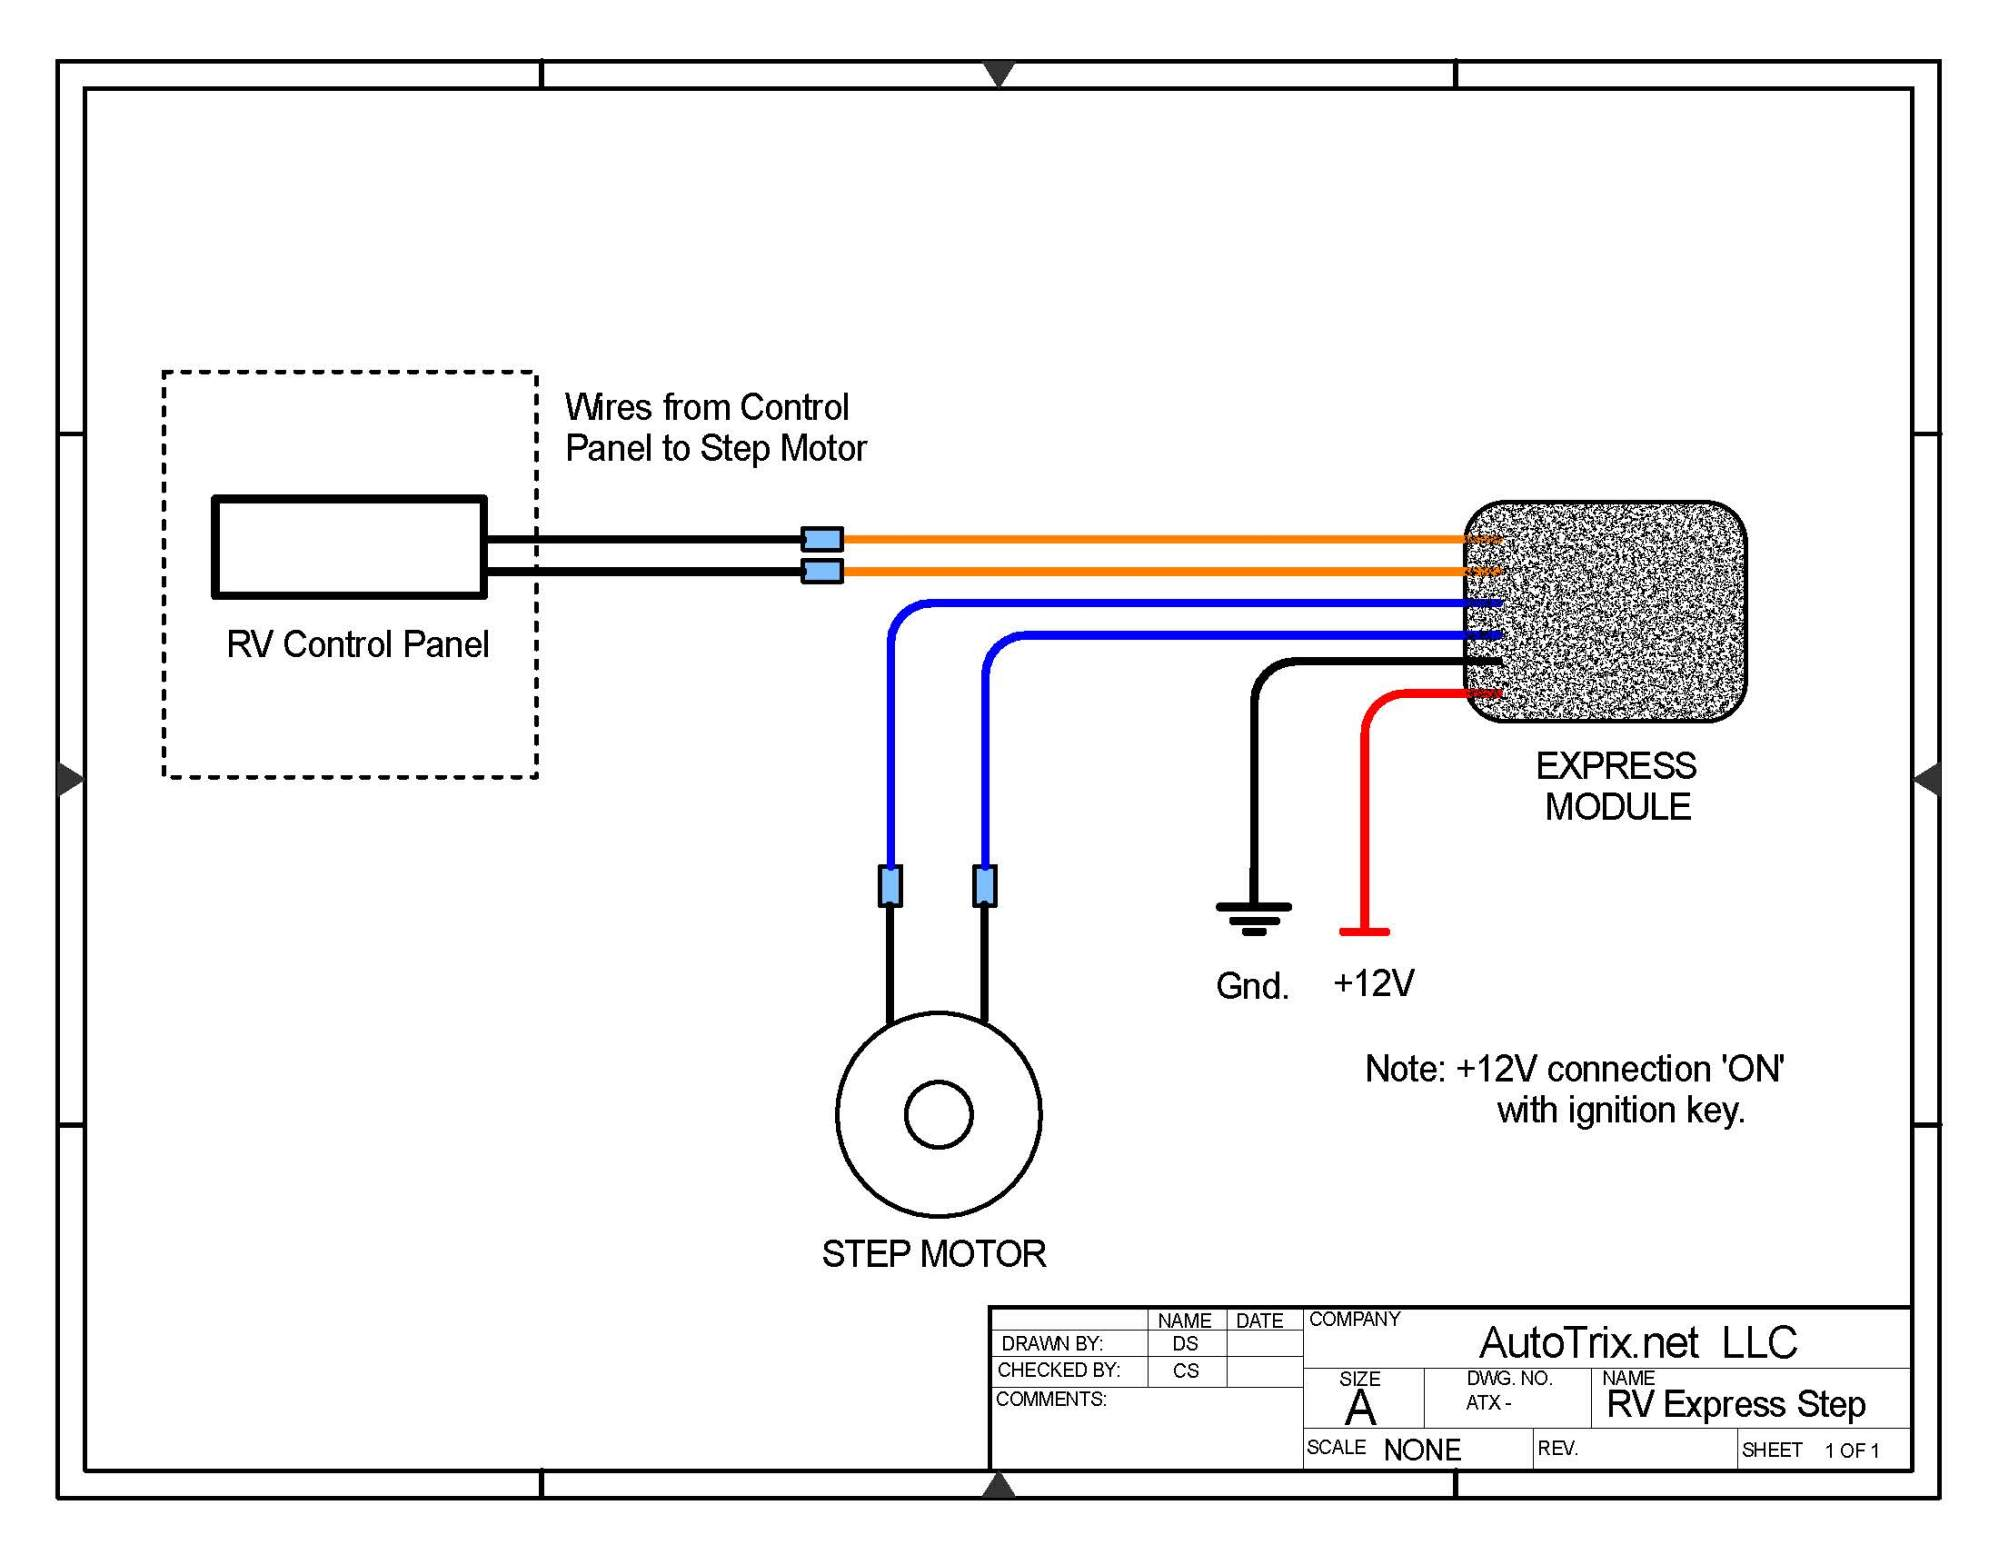 hight resolution of universal rv step cover express module motor install autotrix netrv step wiring diagram 10